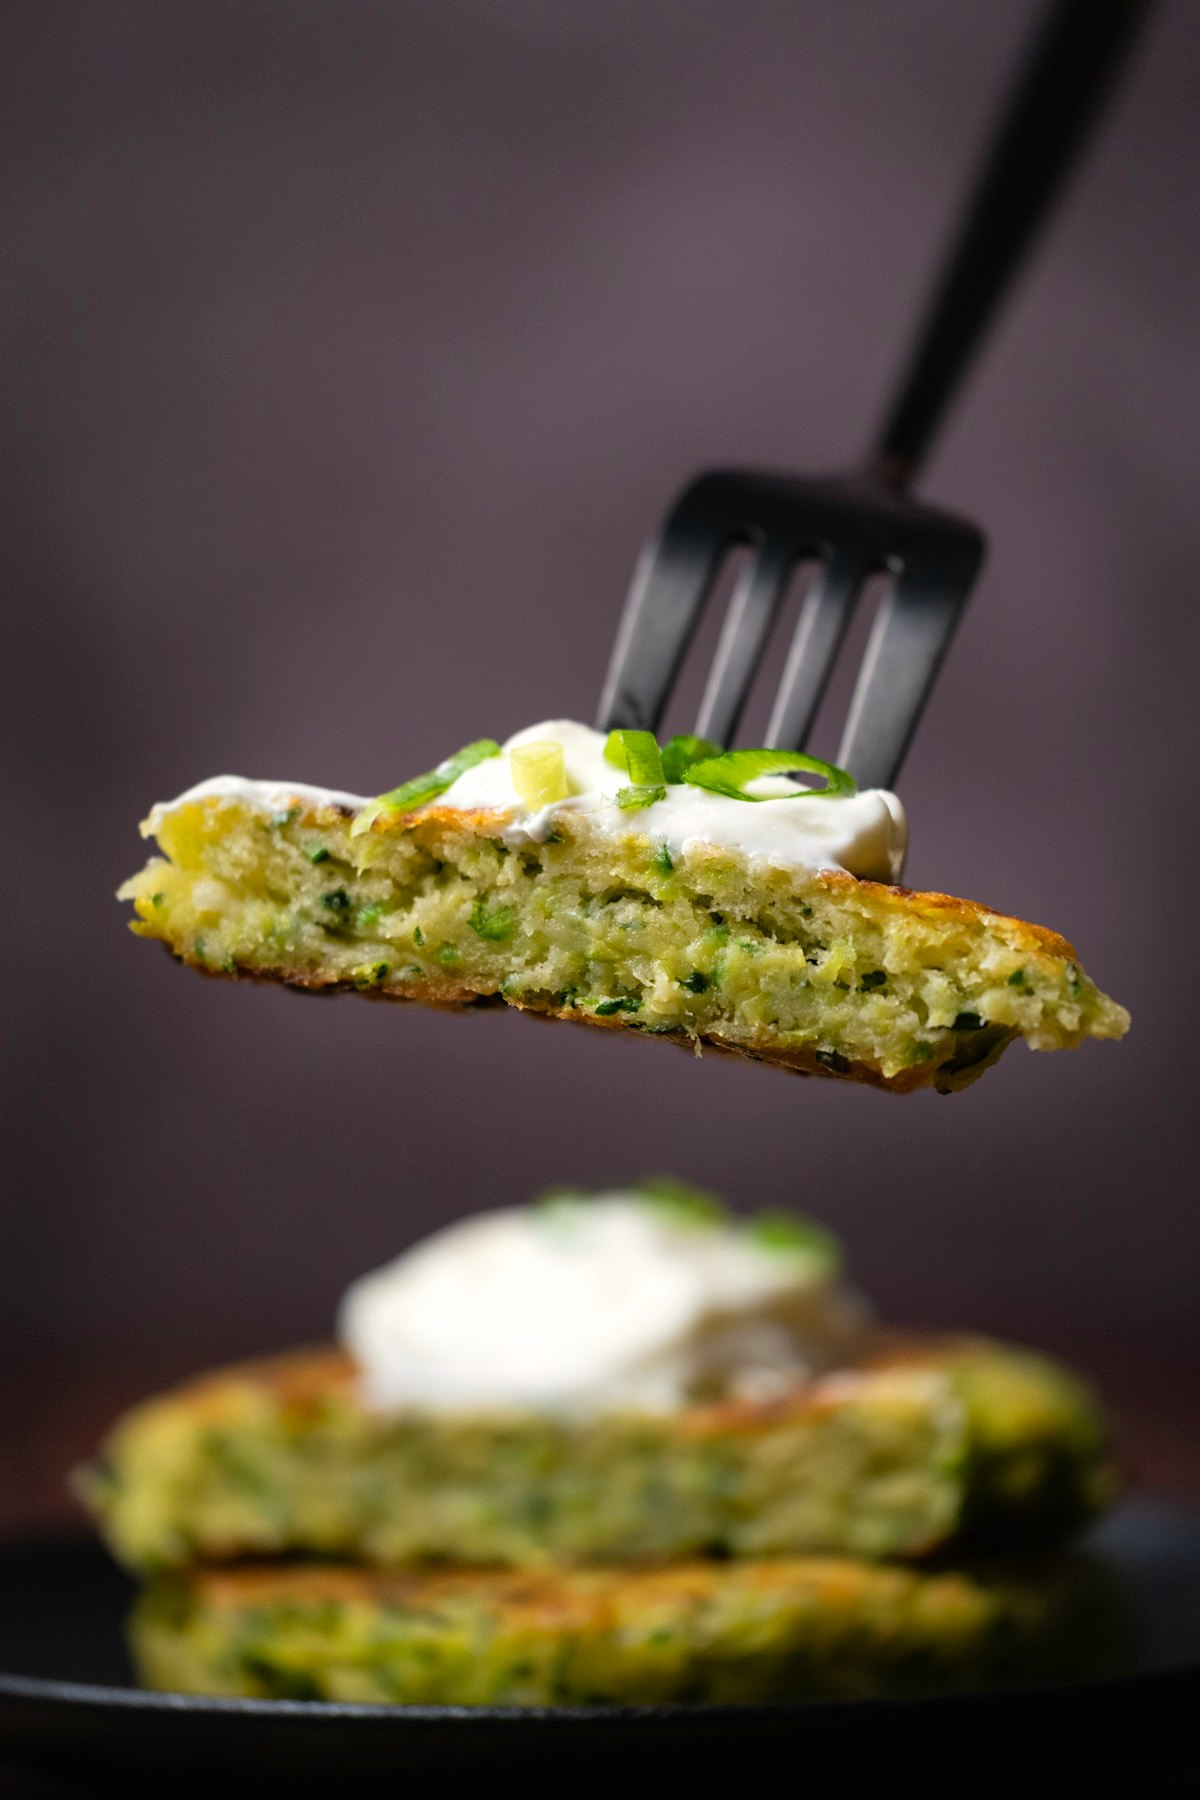 Forkful of zucchini fritters.